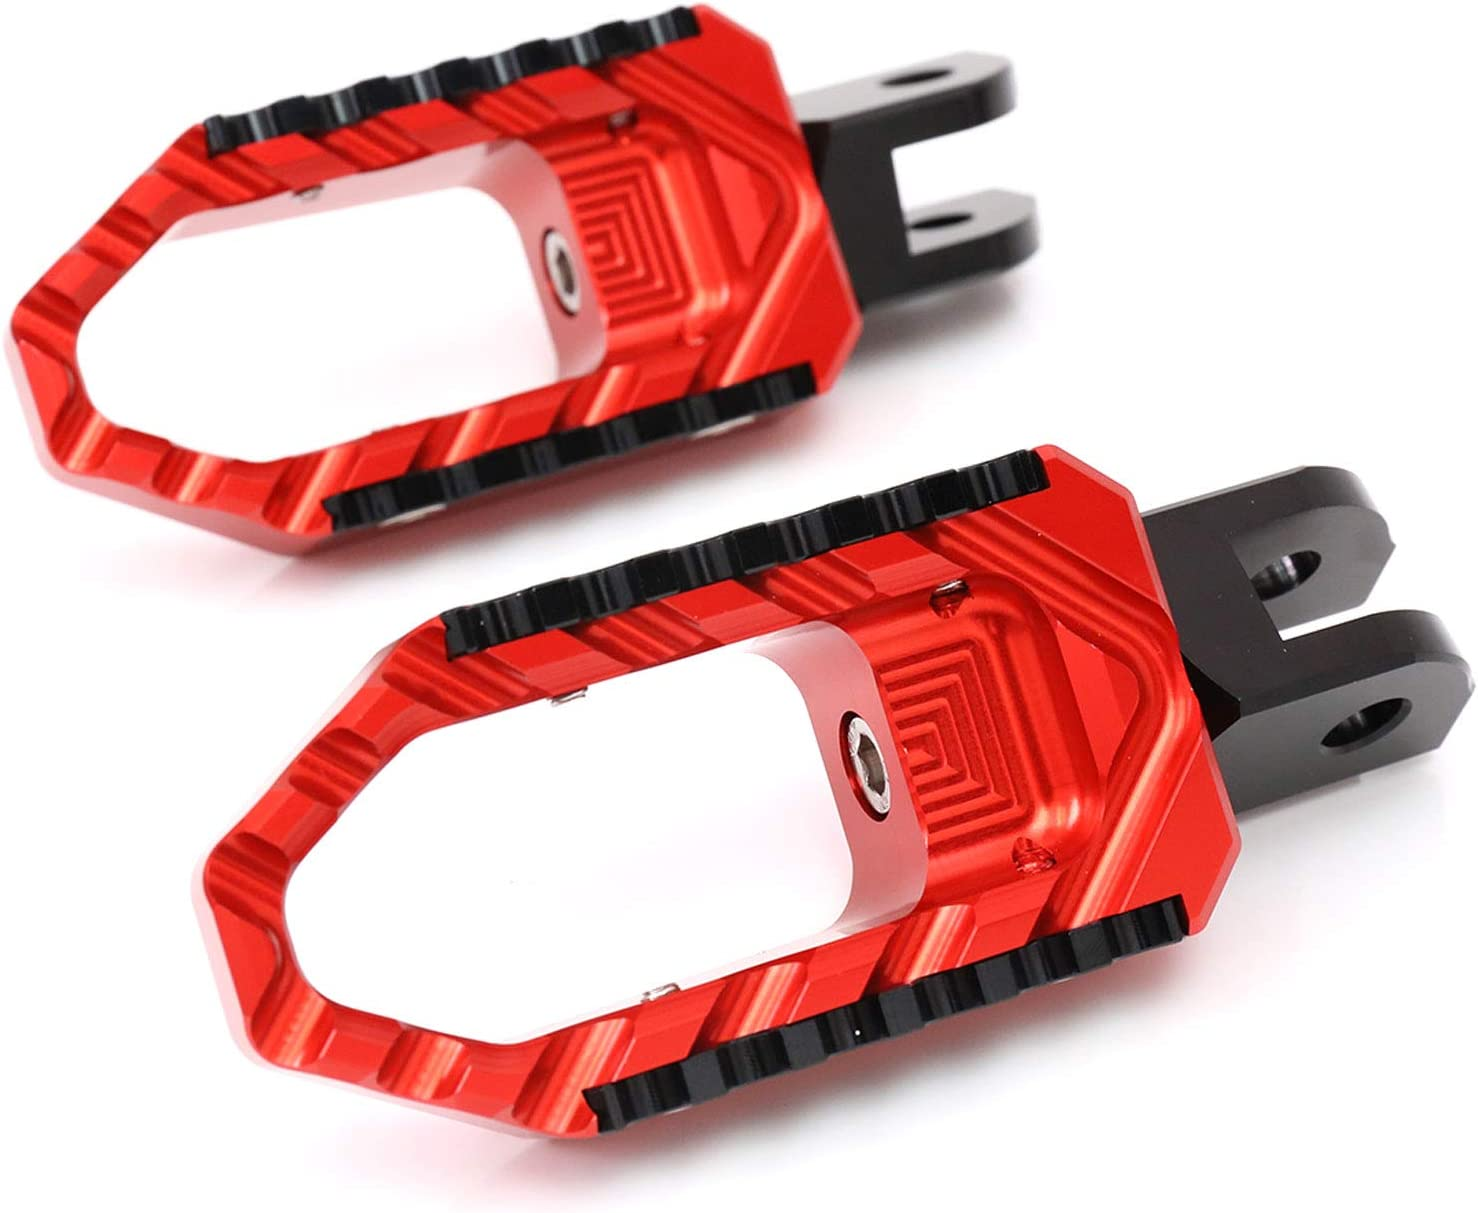 Red Model FP-FRONT-F031-BK-00MM-BK-TOUR-RD-TH-BK Autobahn88 Motorcycle Footpeg Front//Rider - Touring-Type with No-Extension